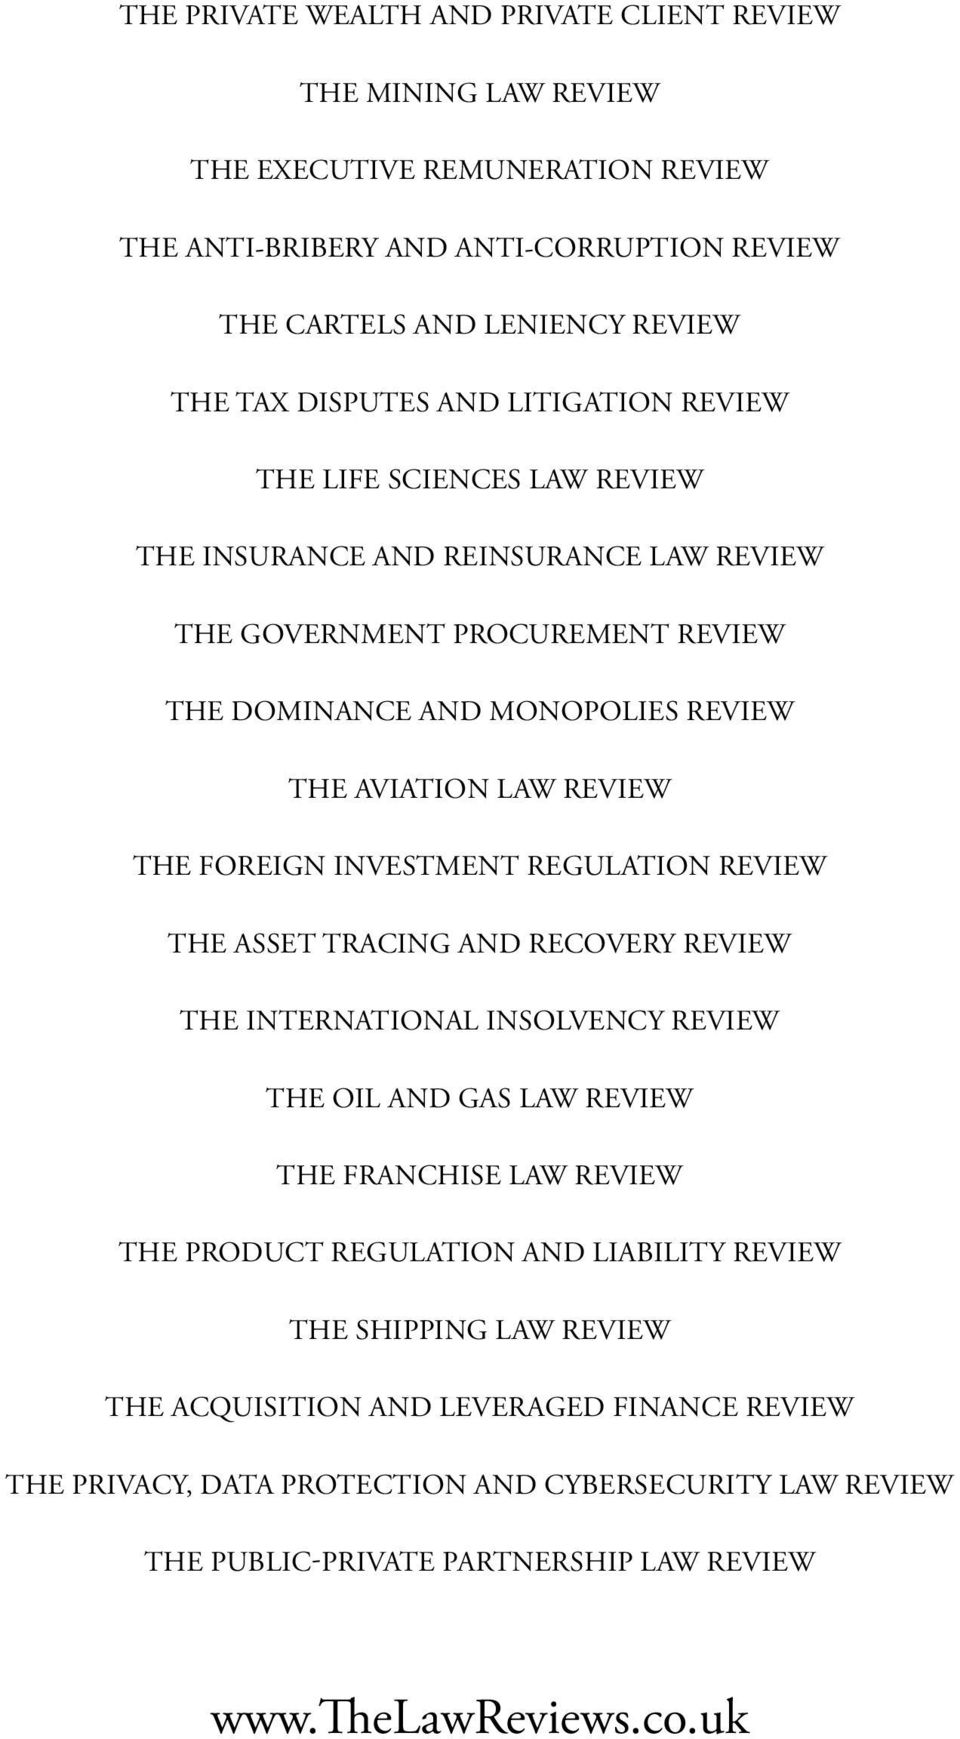 FOREIGN INVESTMENT REGULATION REVIEW THE ASSET TRACING AND RECOVERY REVIEW THE INTERNATIONAL INSOLVENCY REVIEW THE OIL AND GAS LAW REVIEW THE FRANCHISE LAW REVIEW THE PRODUCT REGULATION AND